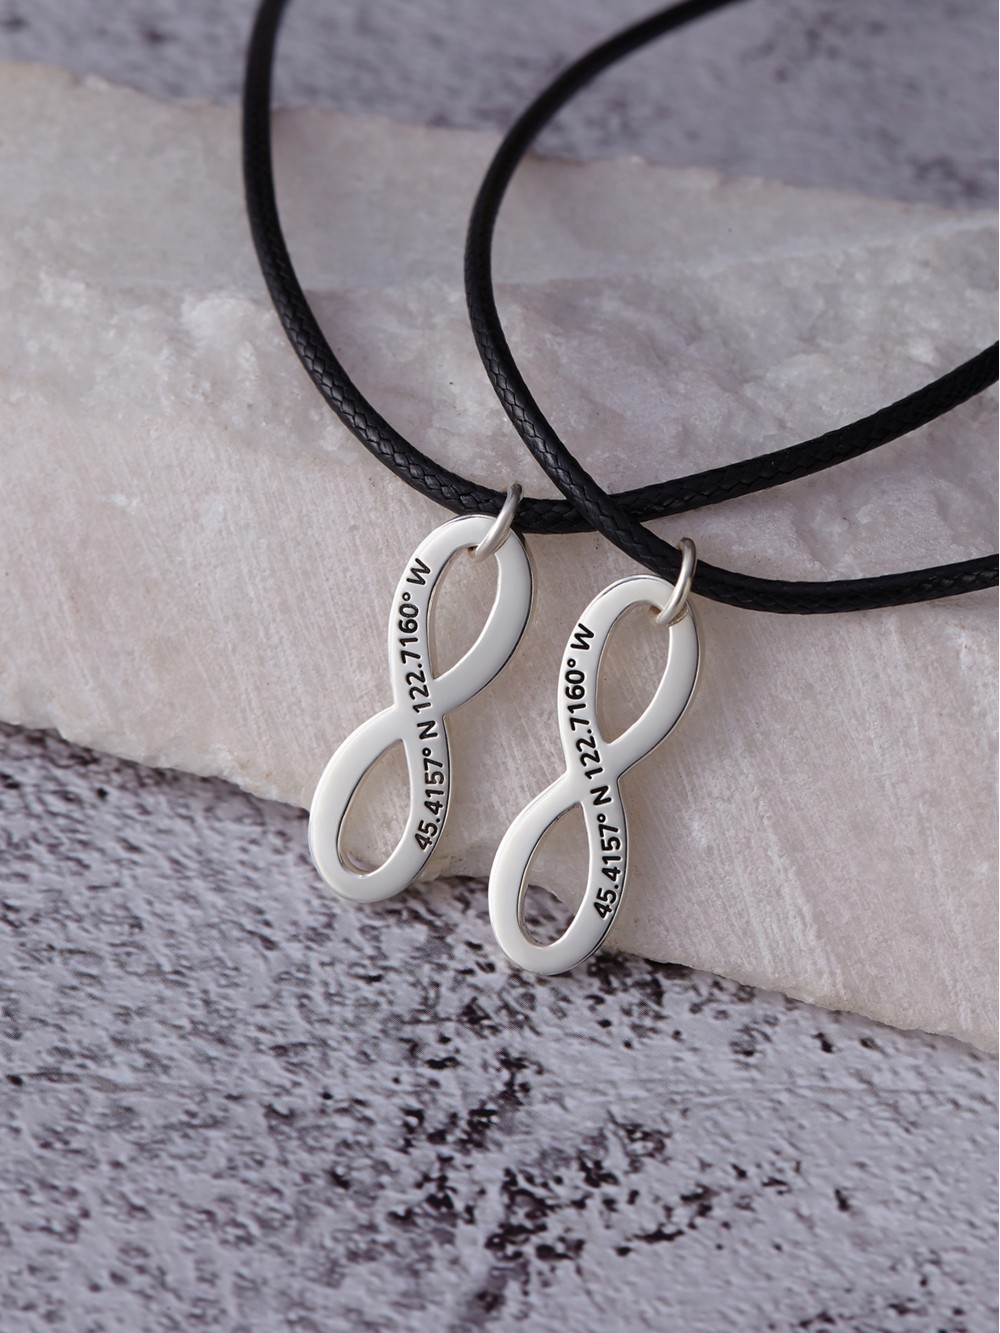 Coordinates Engraved Necklaces for Couples - Leather Cord